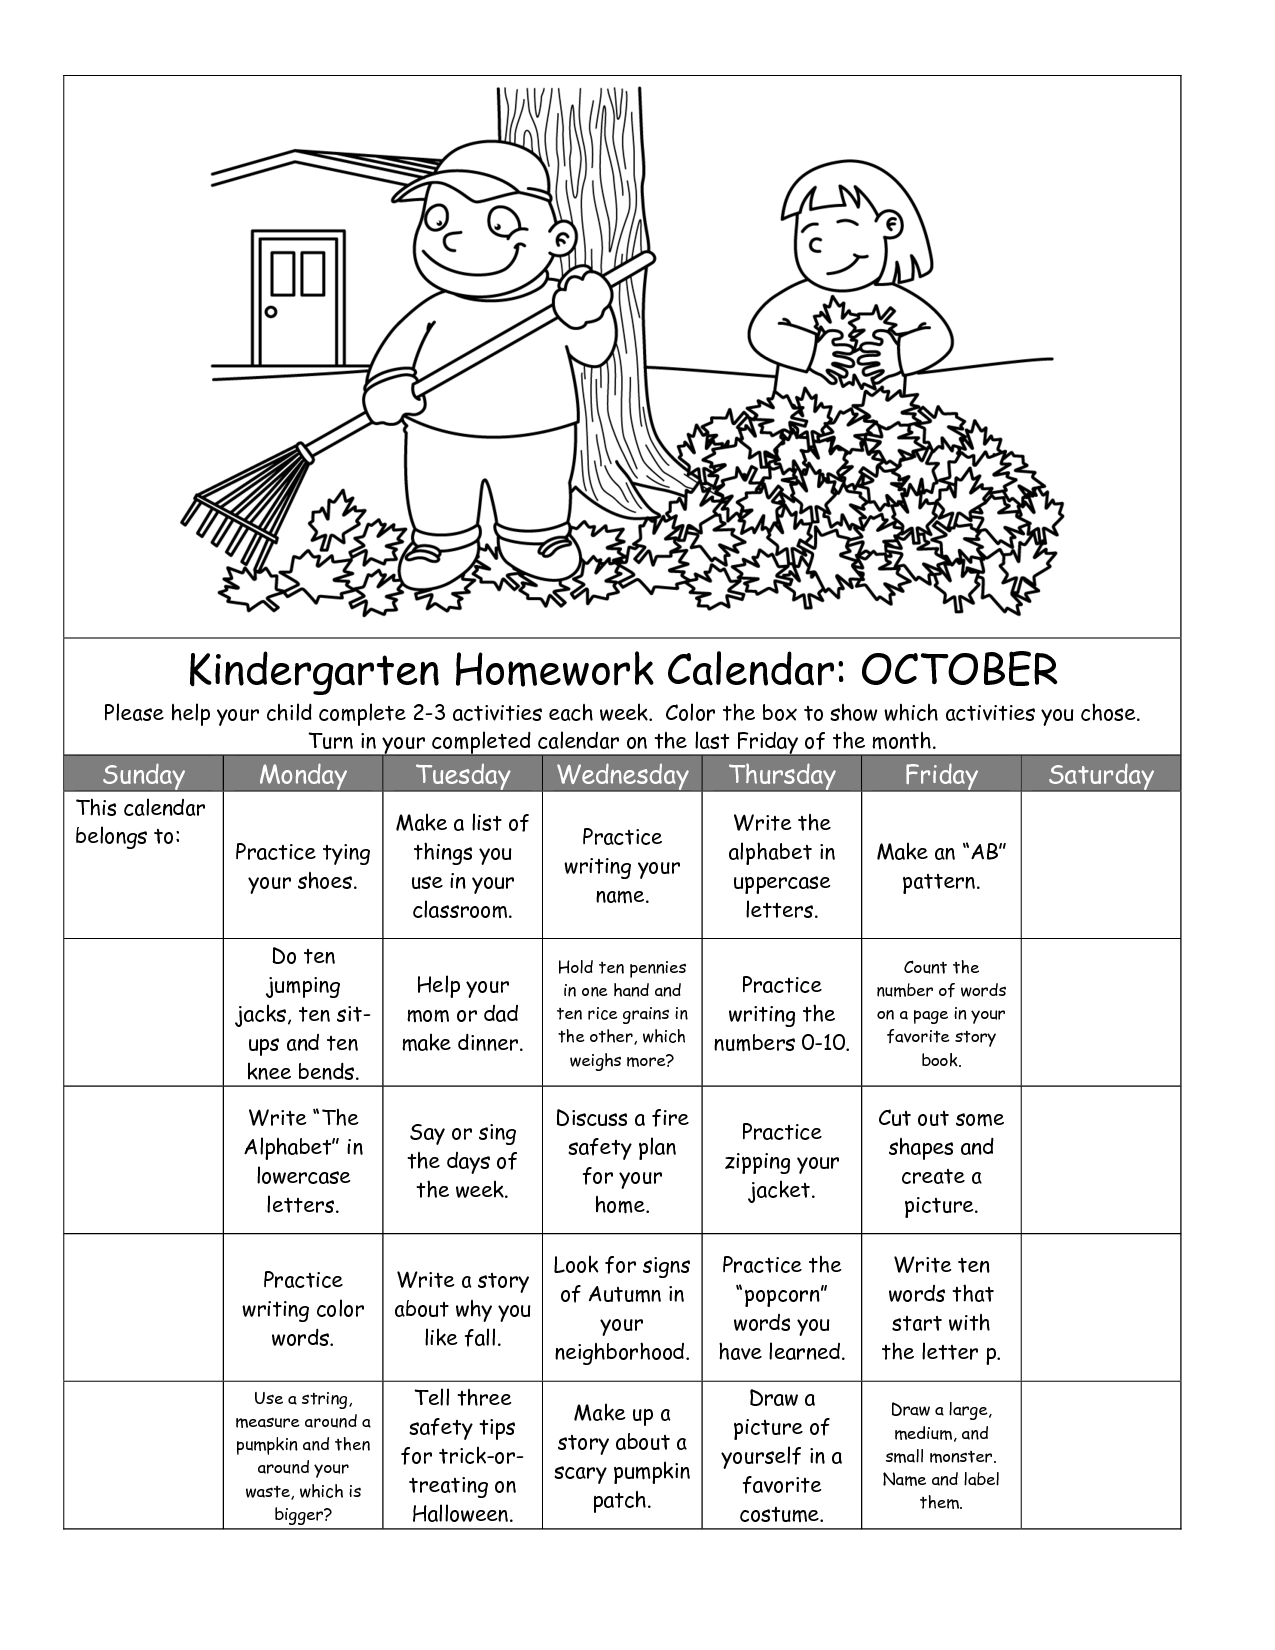 17 Best Images Of Calendar Worksheets For Kindergarten